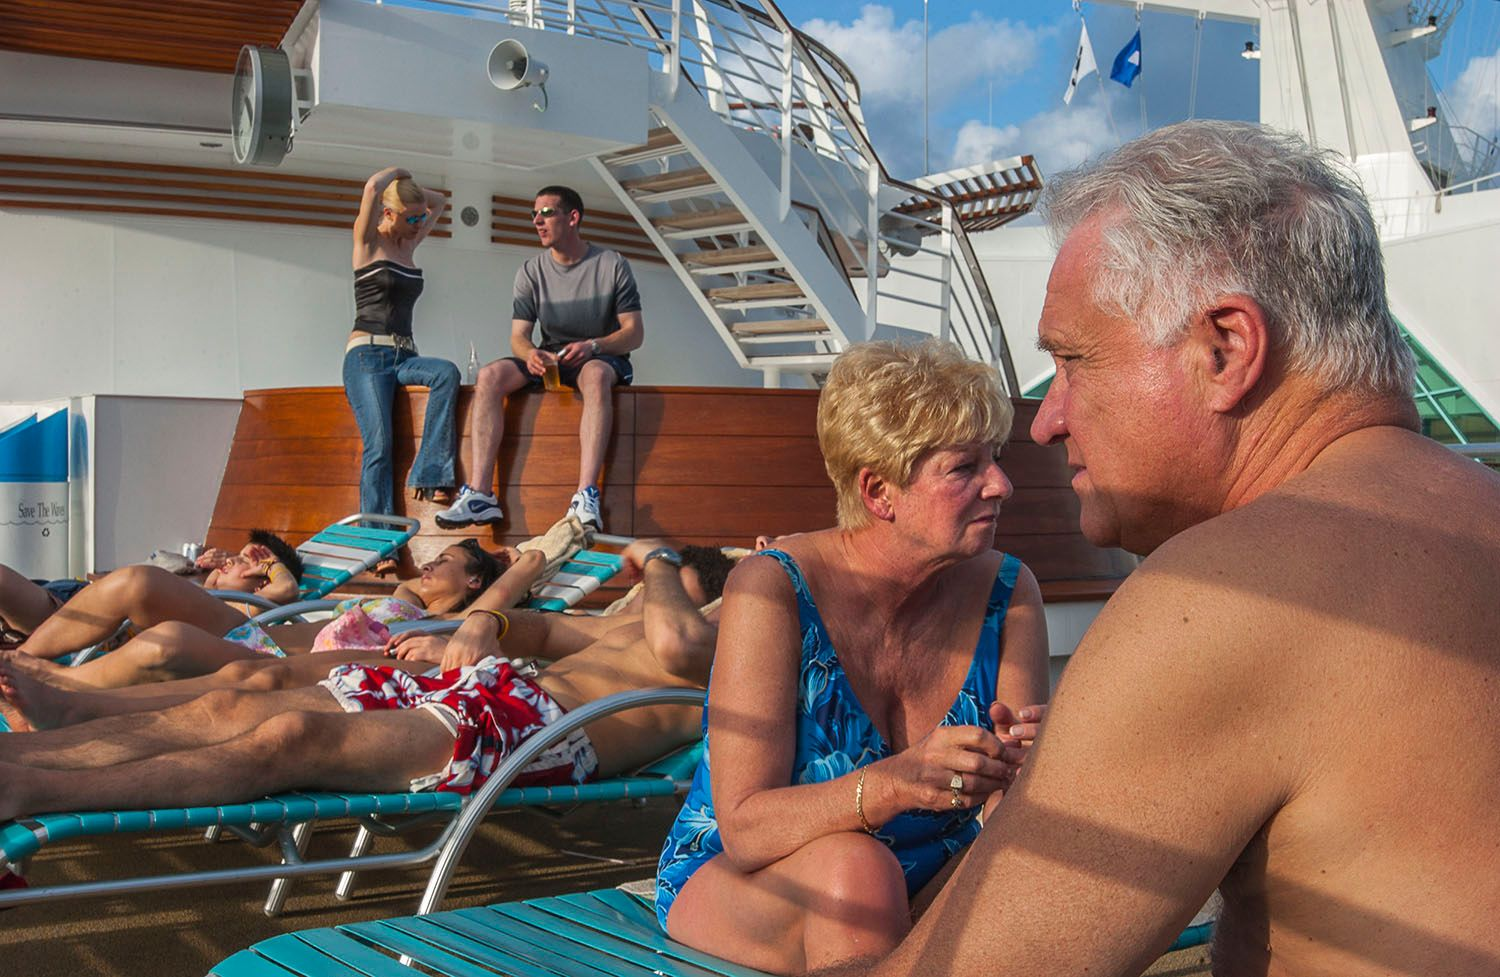 Poolside on a Cruise ship